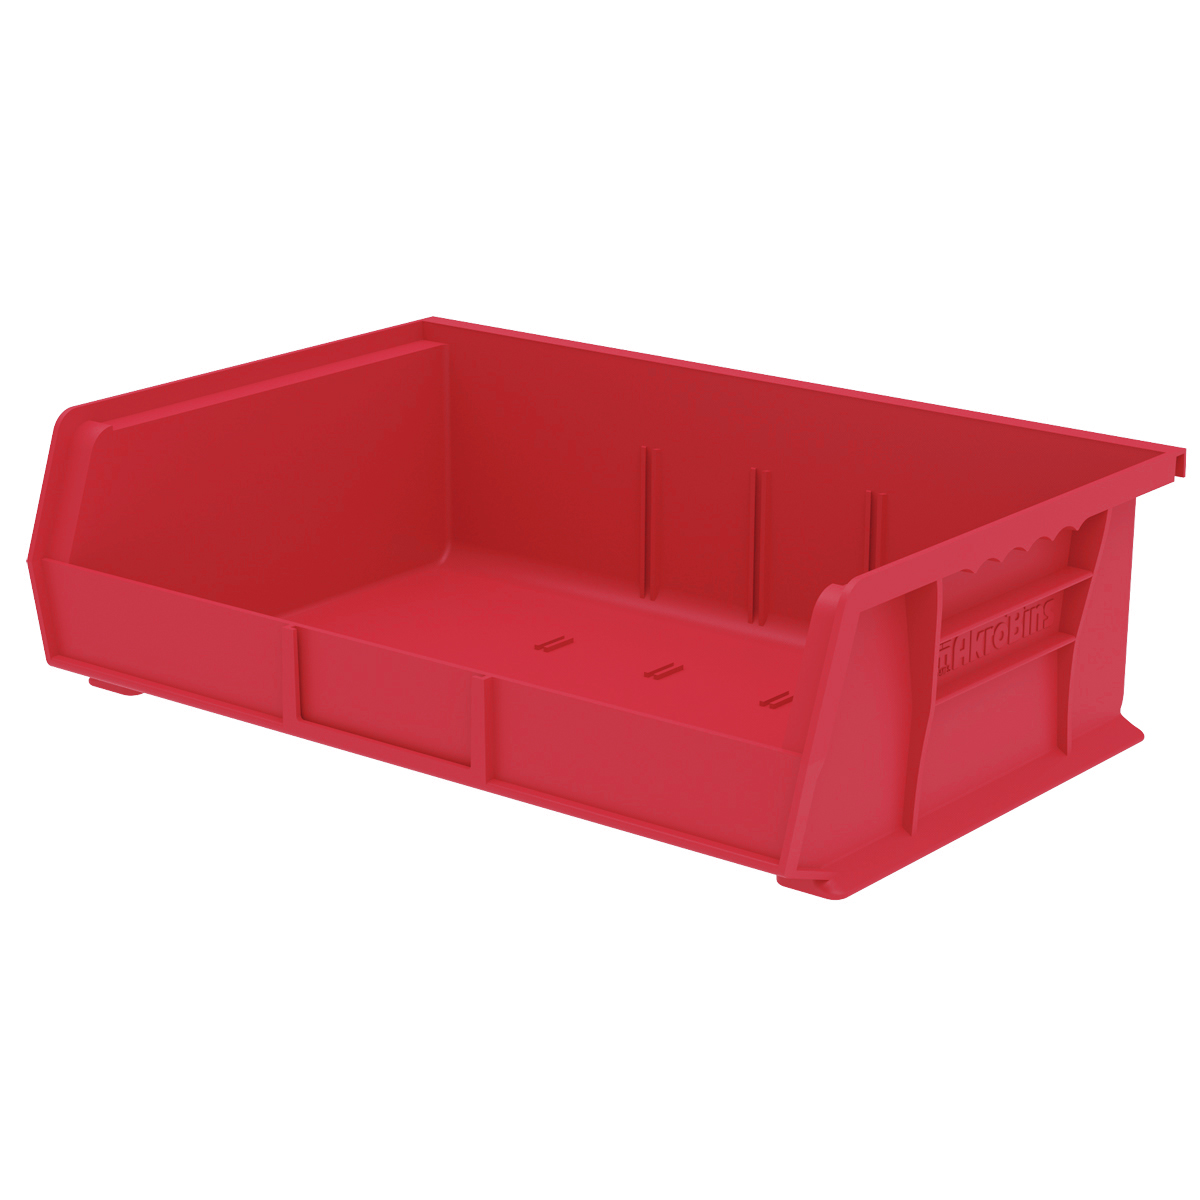 AkroBin 10-7/8 x 16-1/2 x 5, Red (30255RED).  This item sold in carton quantities of 6.